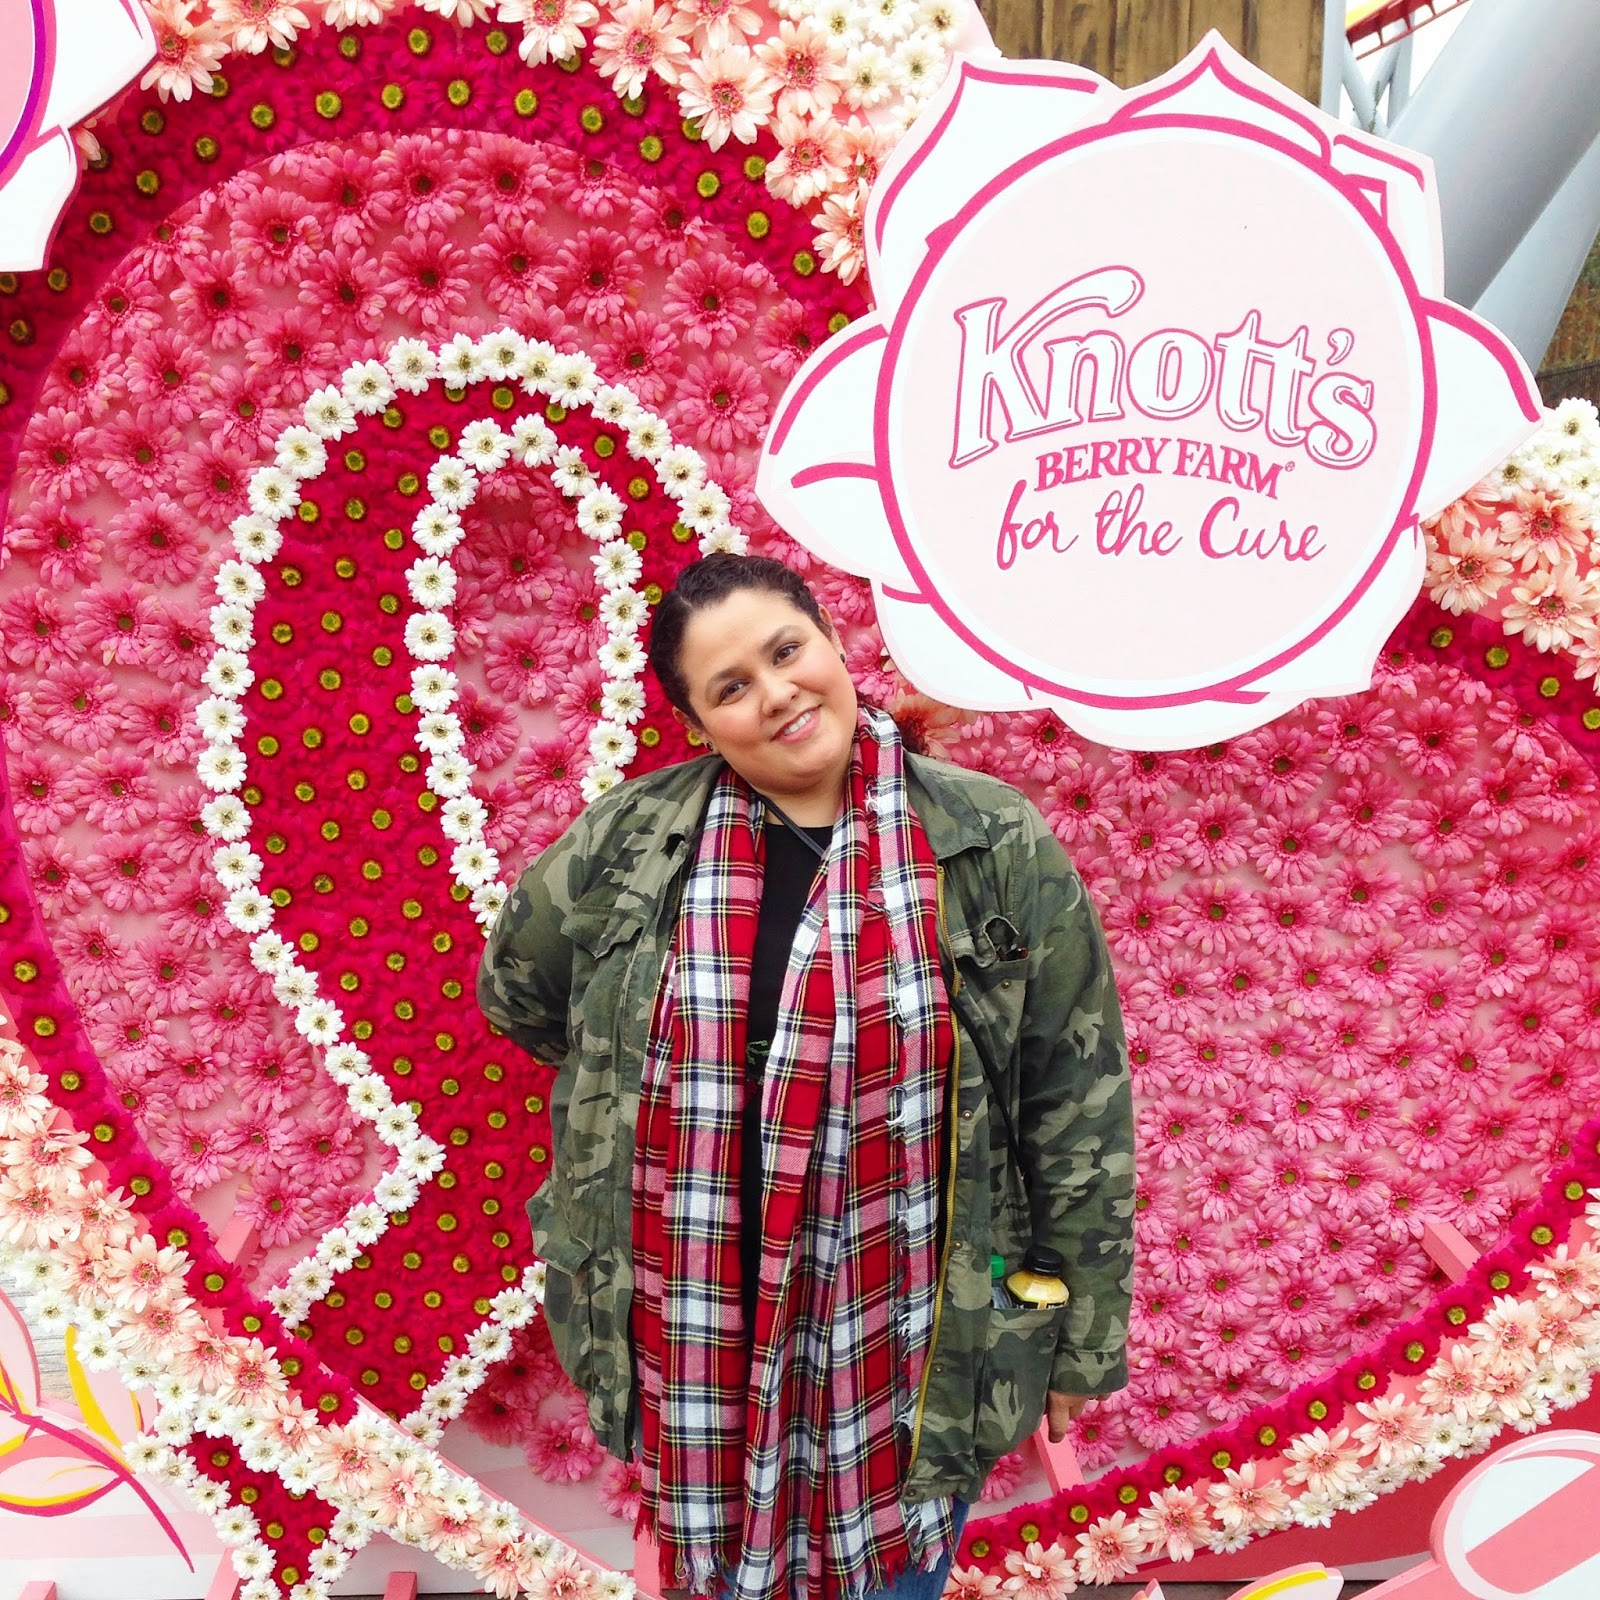 knotts berry farm, pink for the cure, snoopy, breast cancer, susan g komen, oc, #knottspink